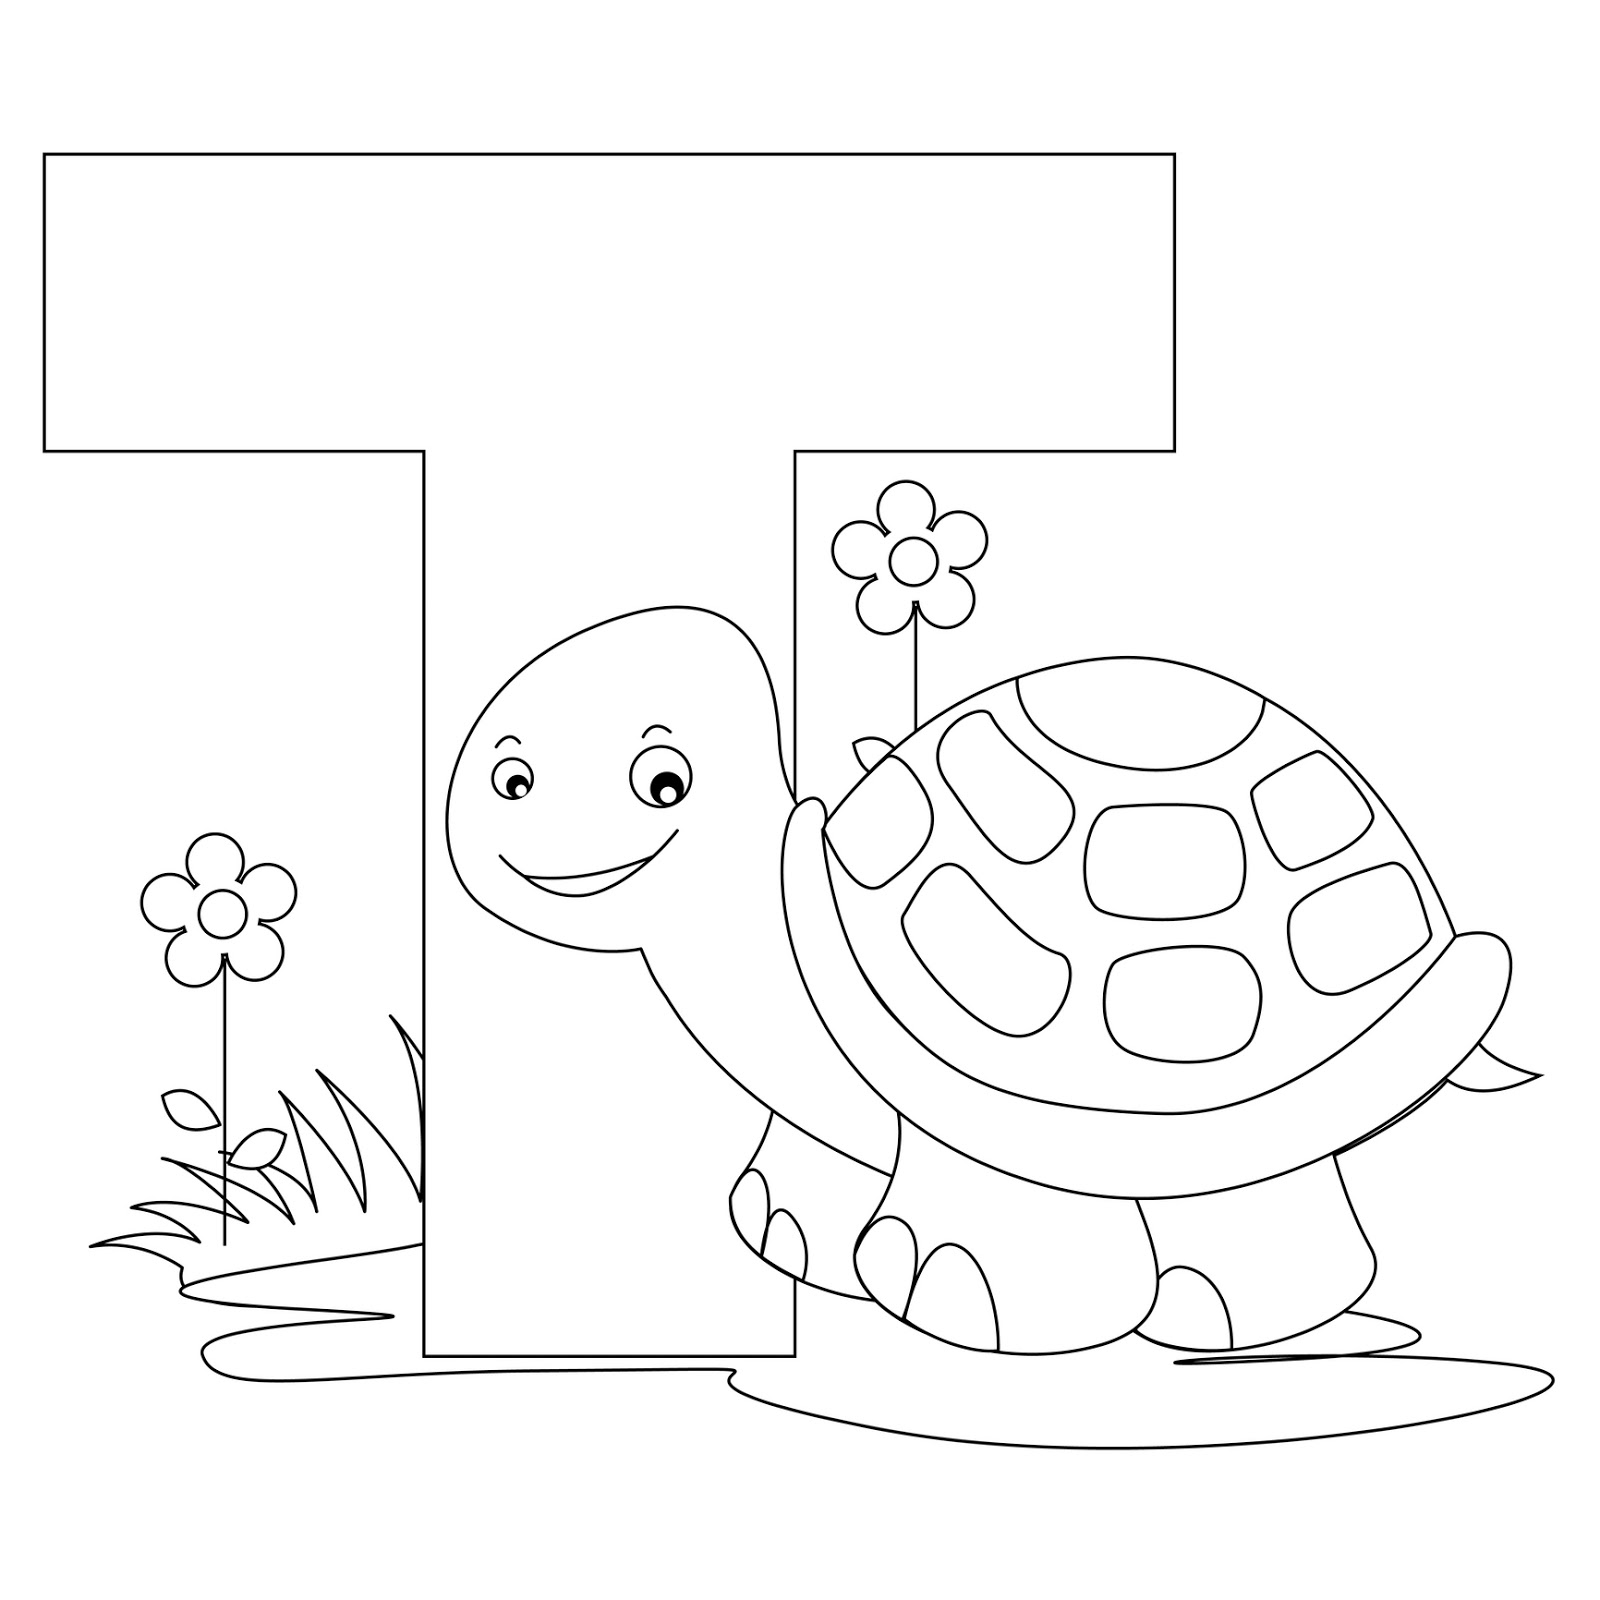 Alphabet Coloring Pages Preschool At Getdrawings Free Download